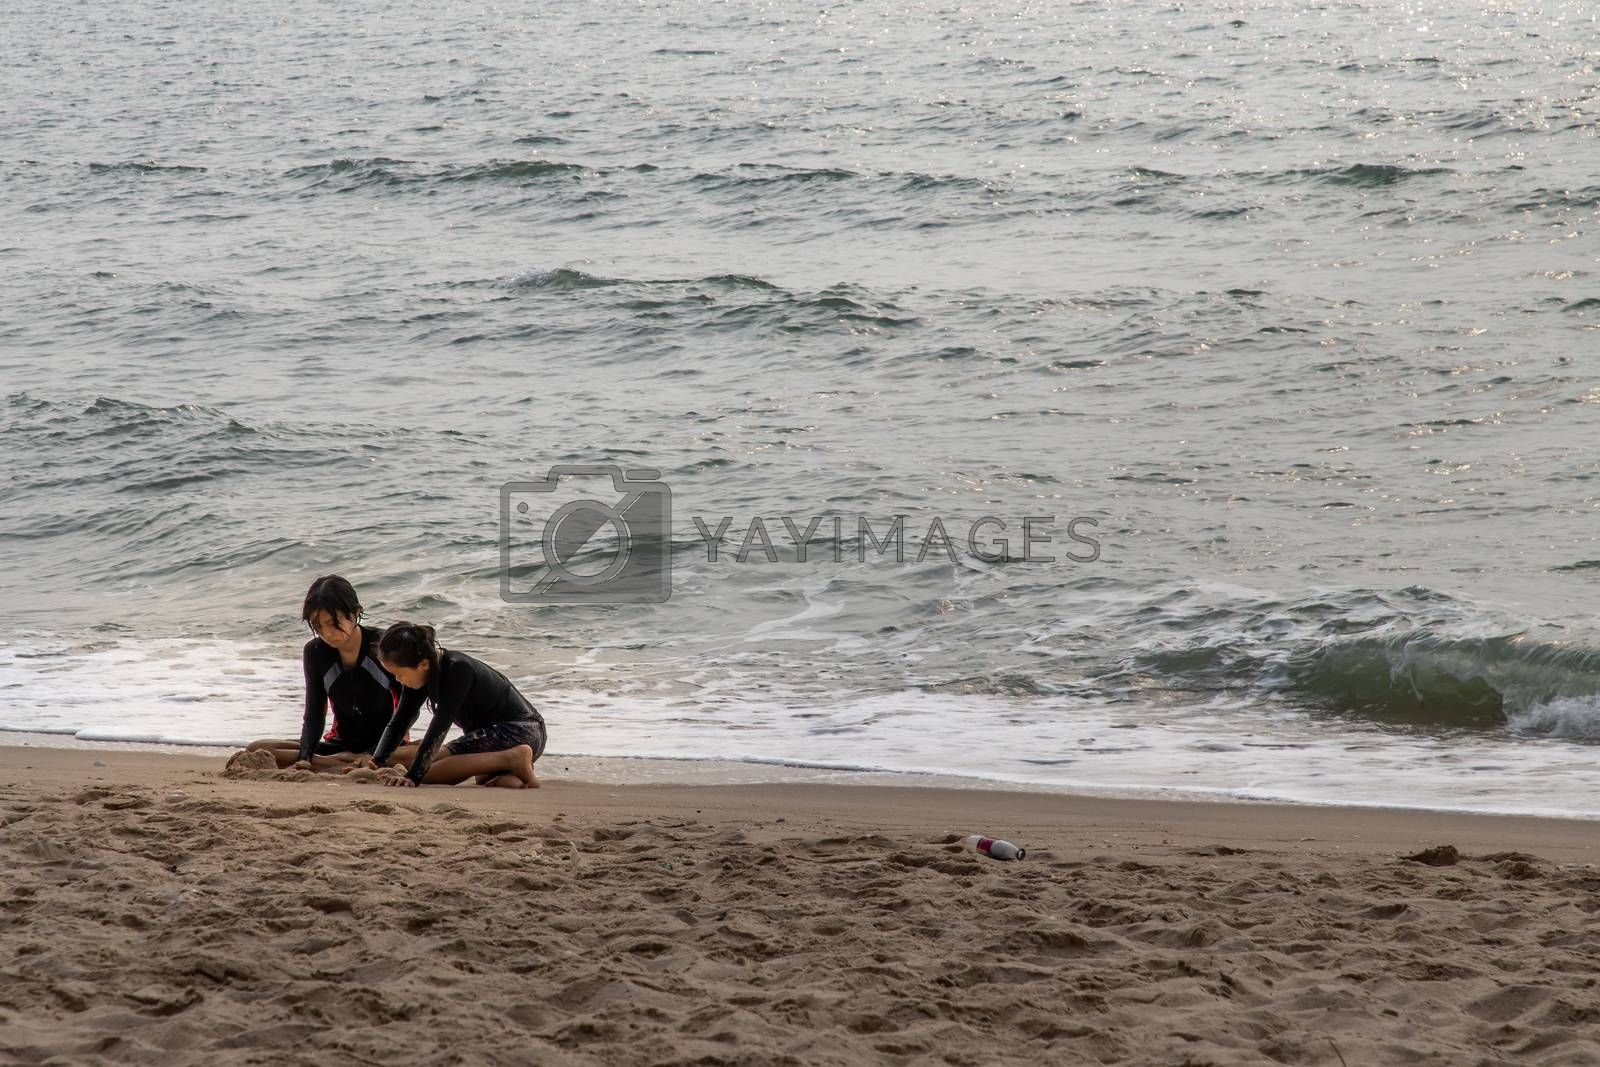 Phetchaburi,Thailand - Mar 15, 2020 : Two girls playing sand on the tropical beach on a sunny day. Vacation trip. Selective focus.